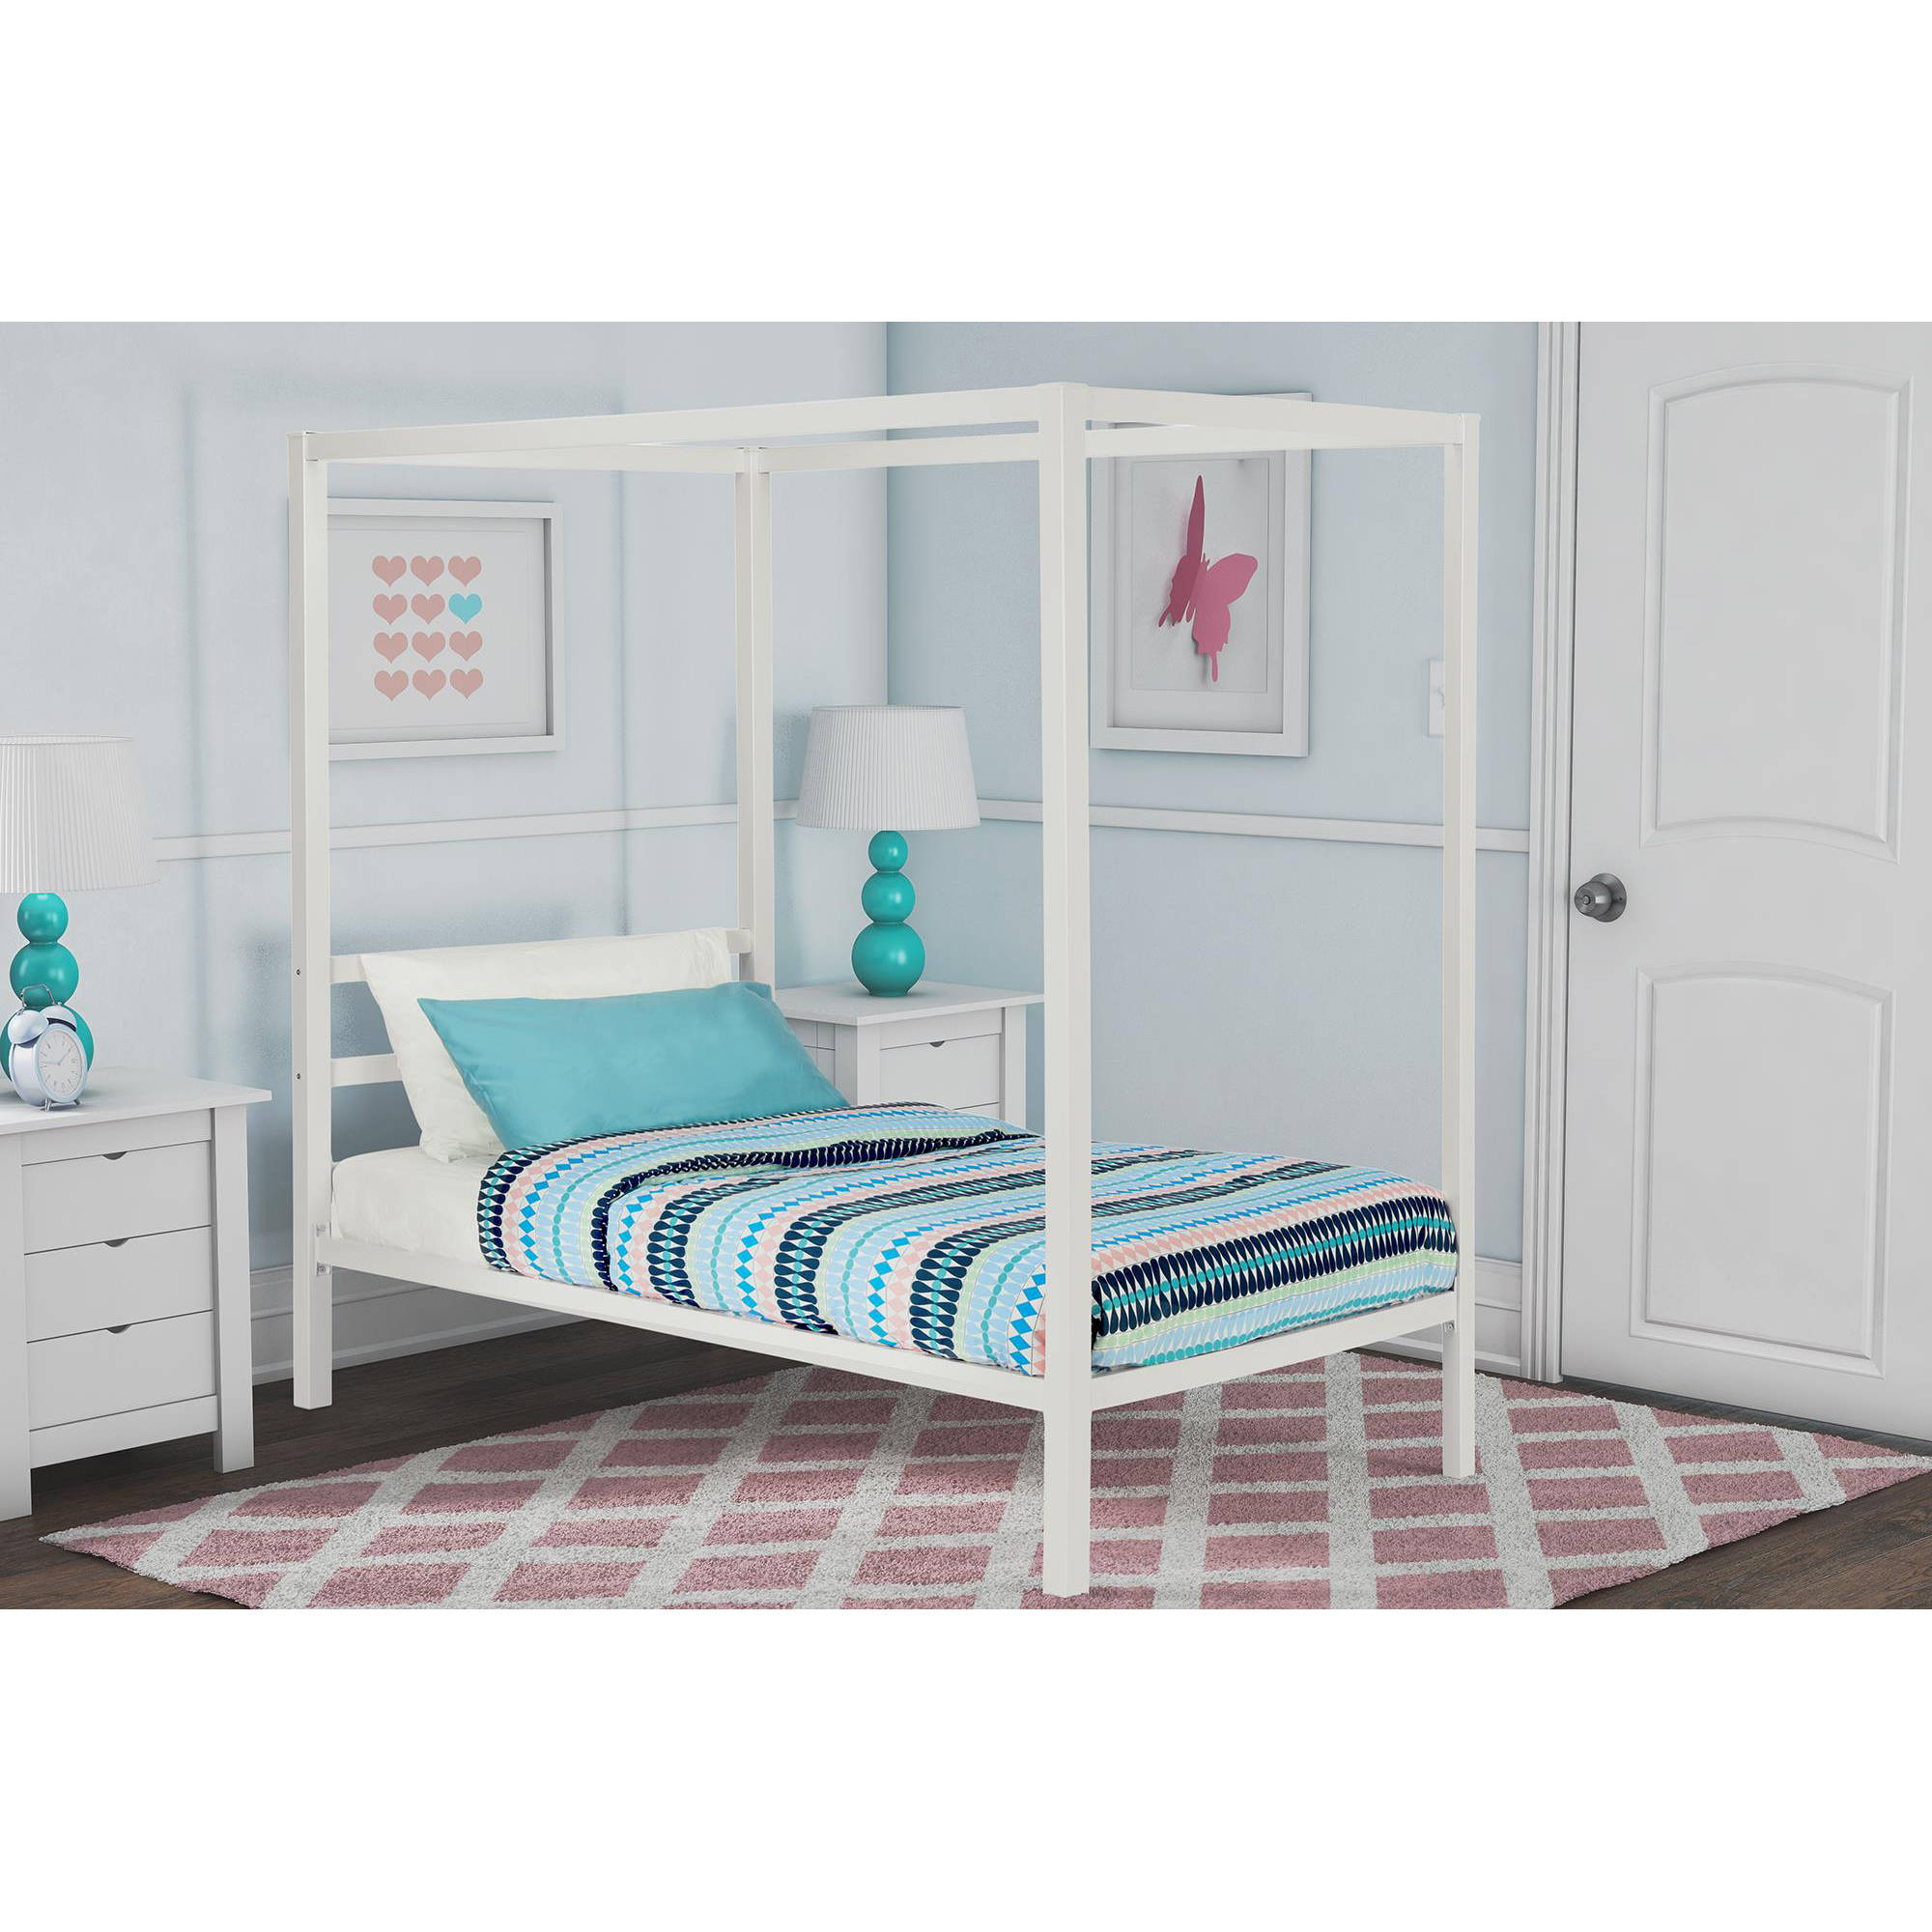 dhp modern metal twin canopy bed in white  ebay - image is loading dhpmodernmetaltwincanopybedinwhite